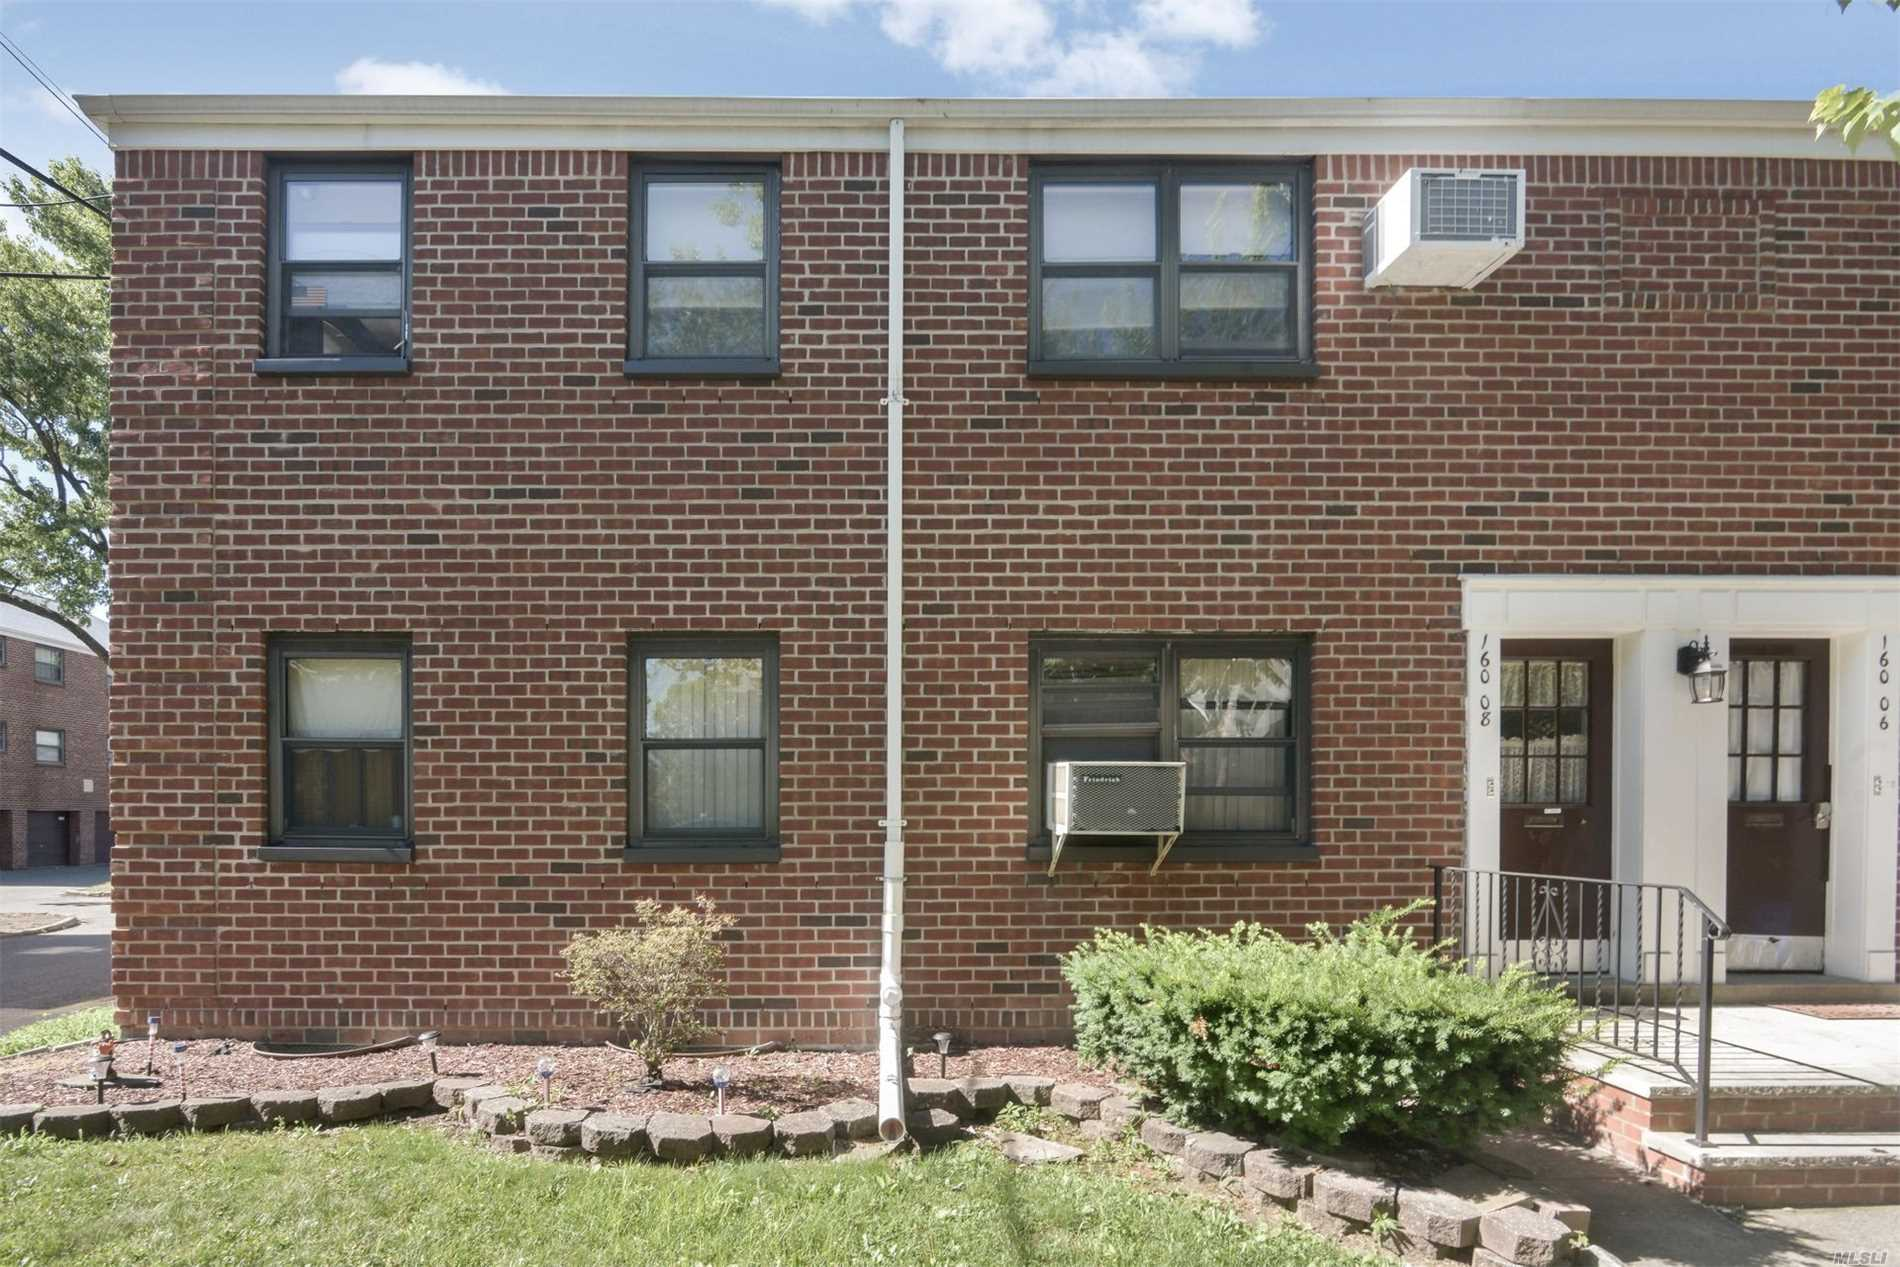 Large And Sunny 2 Bedroom Unit, Hardwood Floors Throughout, Large Updated Eat In Kitchen, Laundry Too, Corner Unit With Extra Windows, Lots Of Natural Sunlight, Large Master Bedroom, Additional Bedroom, This Unit Has A Finished Attic With Hardwood Floors, Cedrar Closet And Much More, Lighting And Electric Too, This Is A Rare Find Unit, A Possible 3rd Bedroom, Clearview Does Not Allow The 2nd Floor Units With Attic Now To Finish-This Is Unique And Very Spacious Unit, Come Make This Your Home